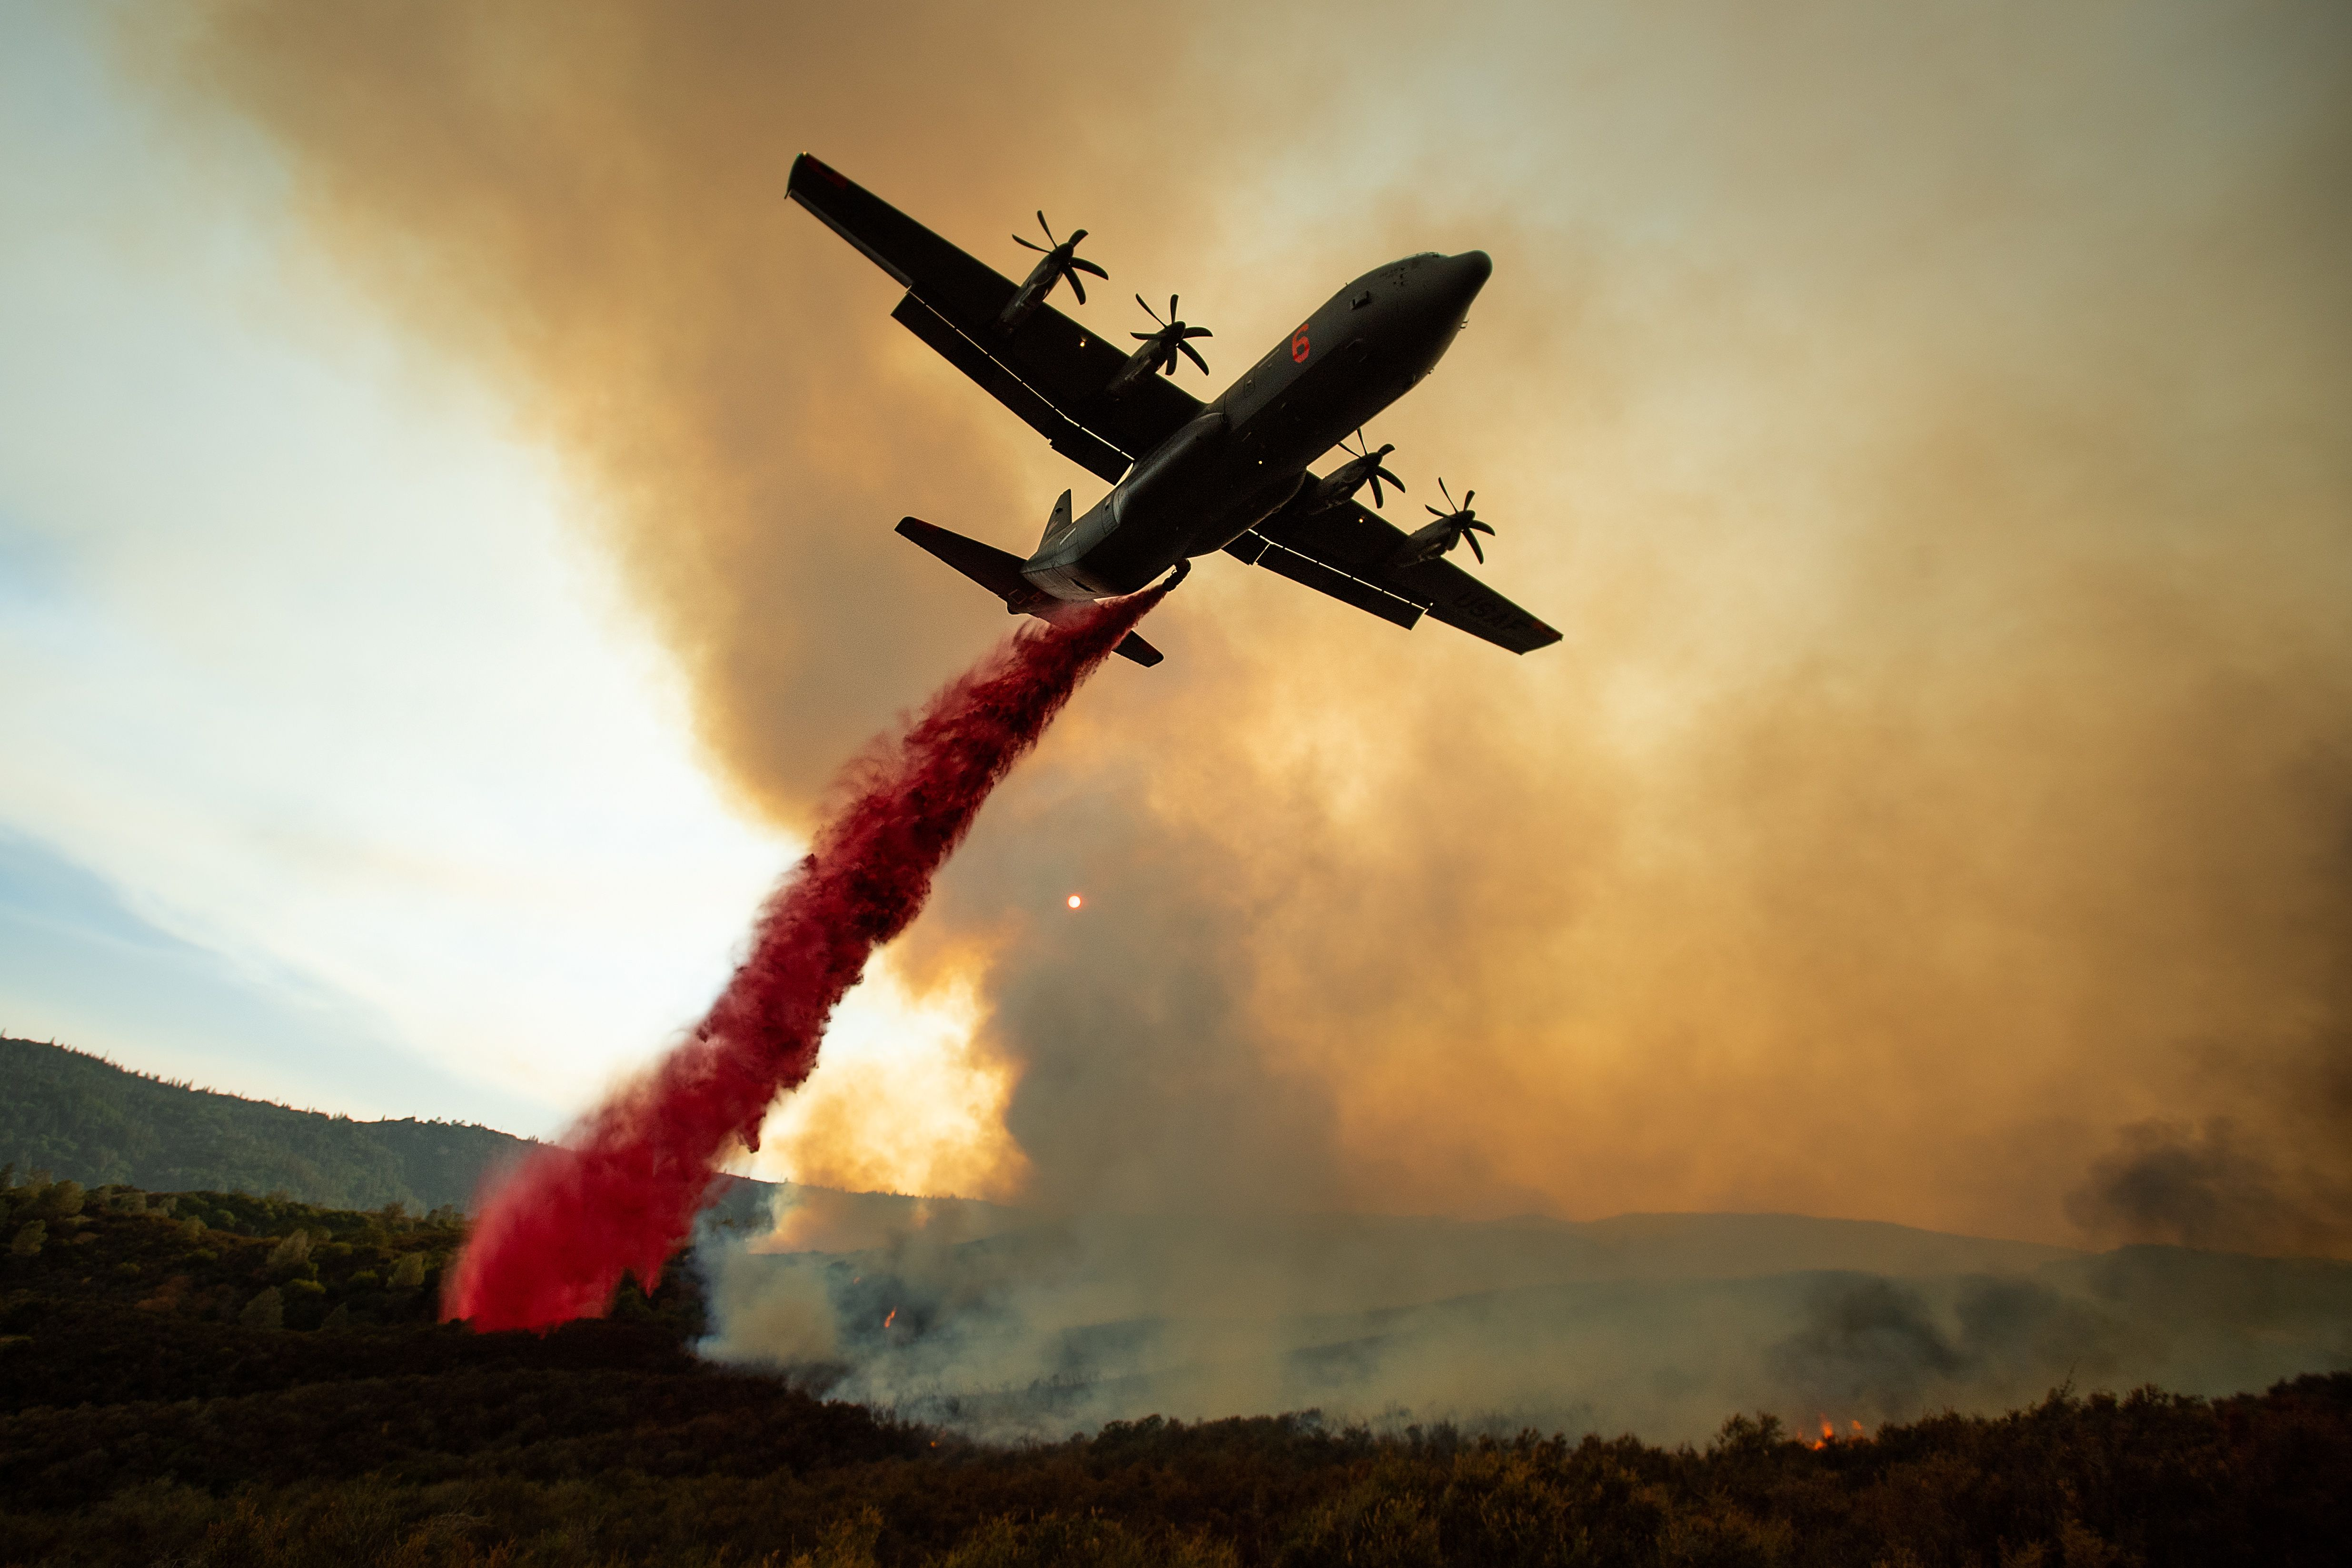 Air air tanker dropping retardant on part of the Mendocino Complex Fire.